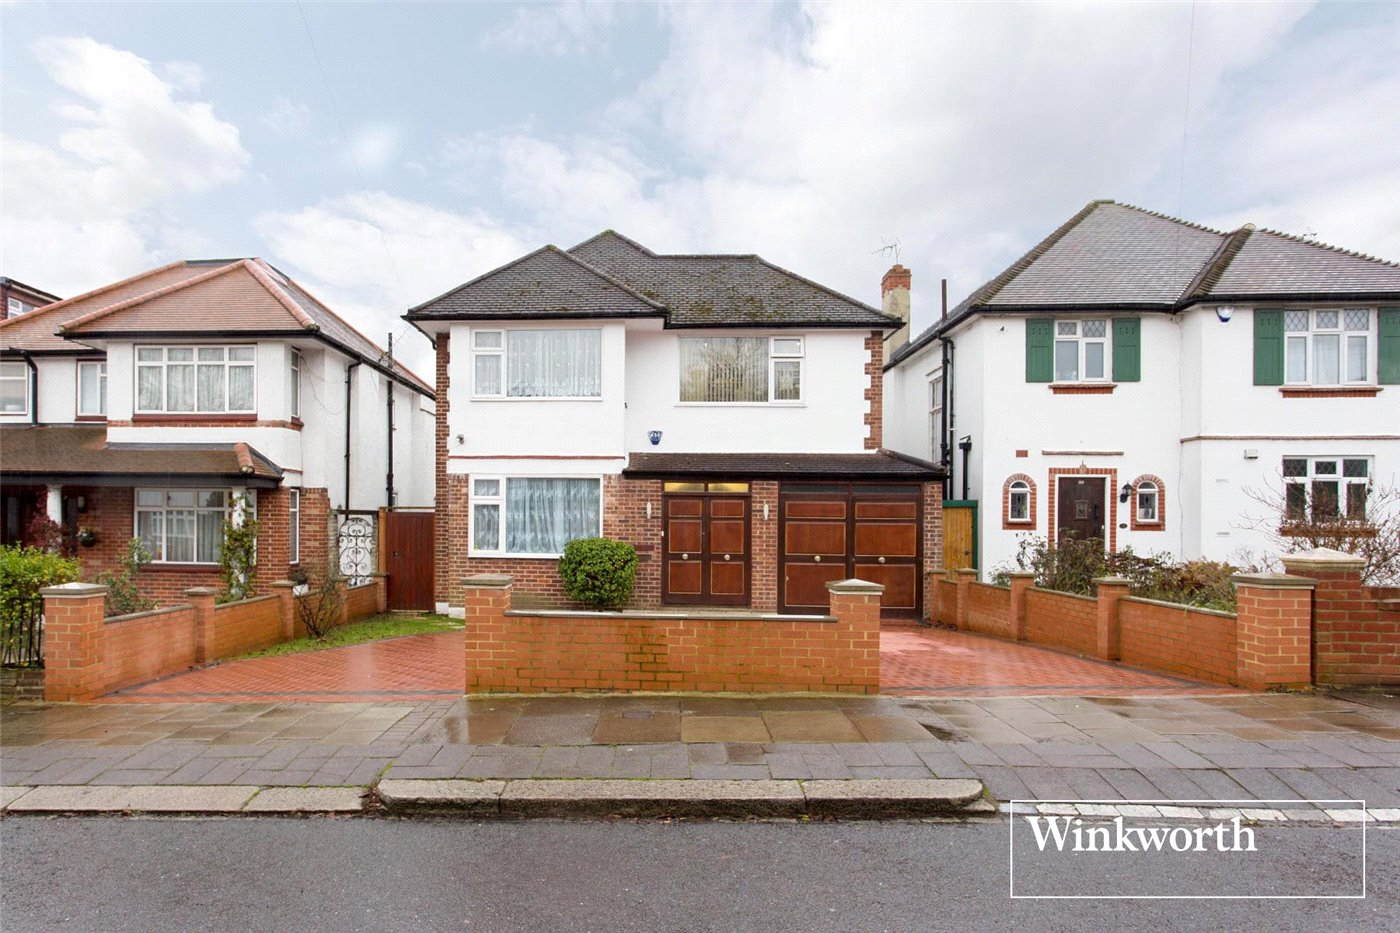 3 Bedrooms Detached House for sale in Greenway, Totteridge, London, N20